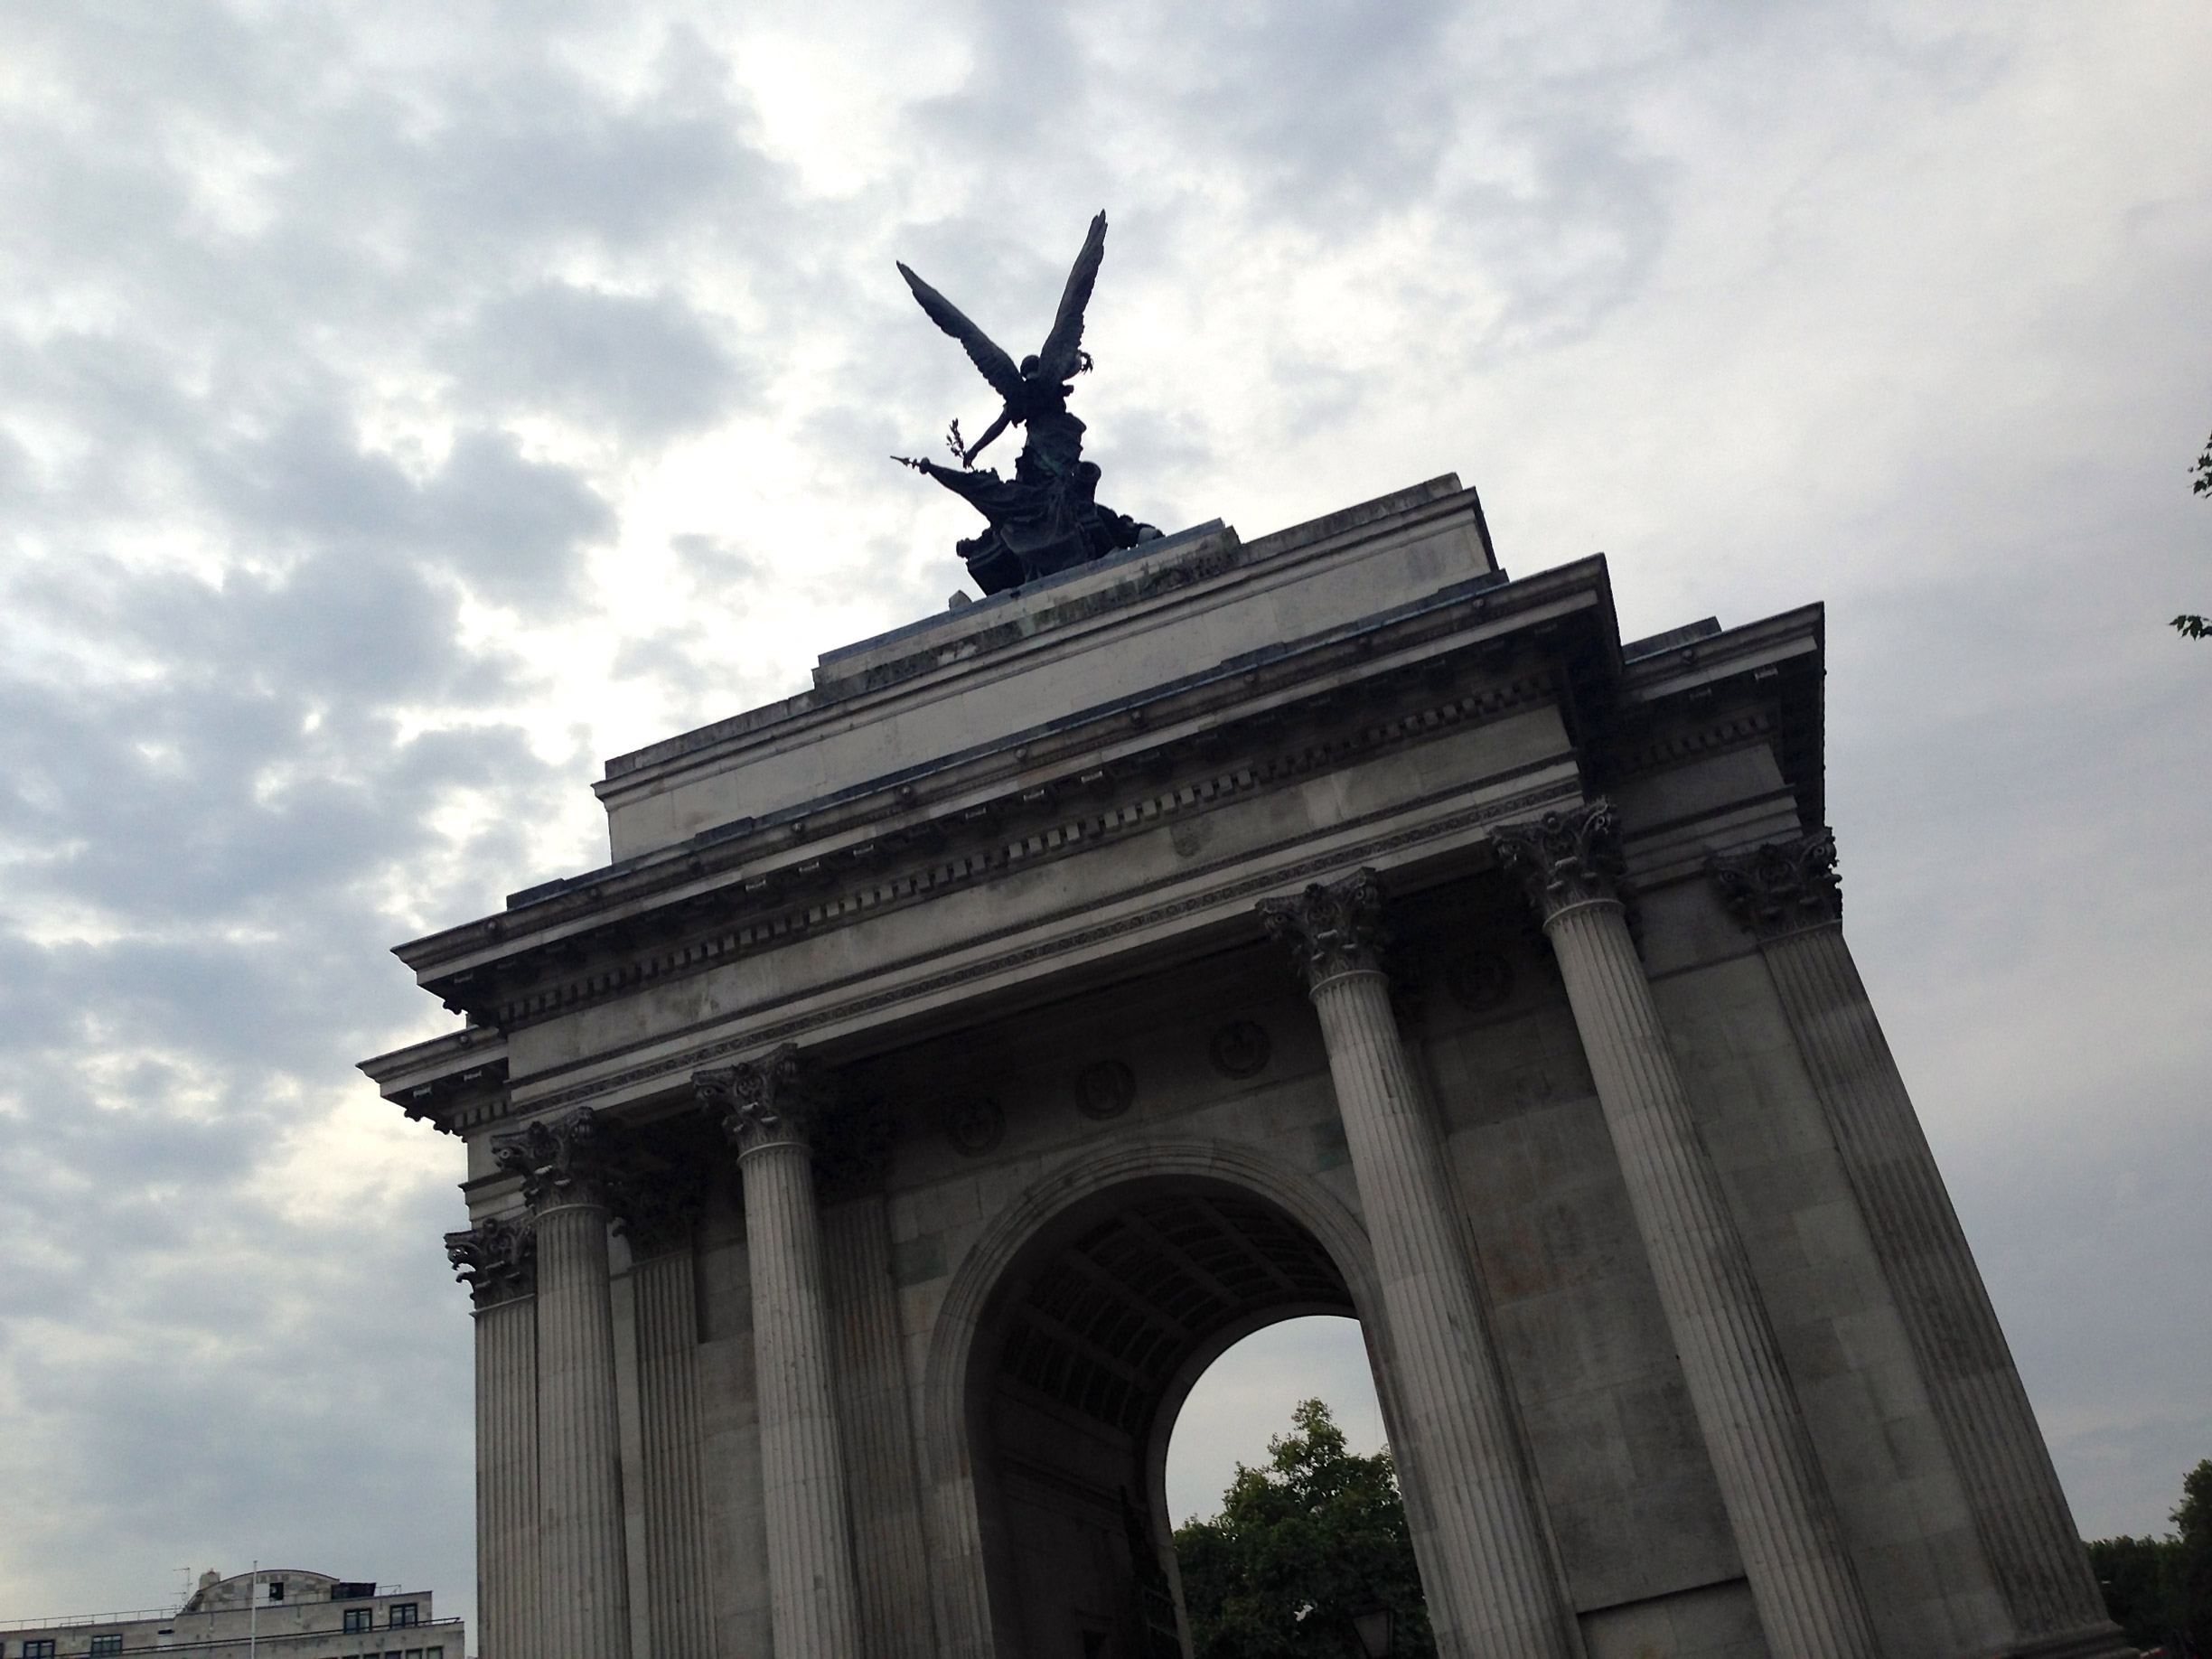 The Wellington Arch in St. James Park